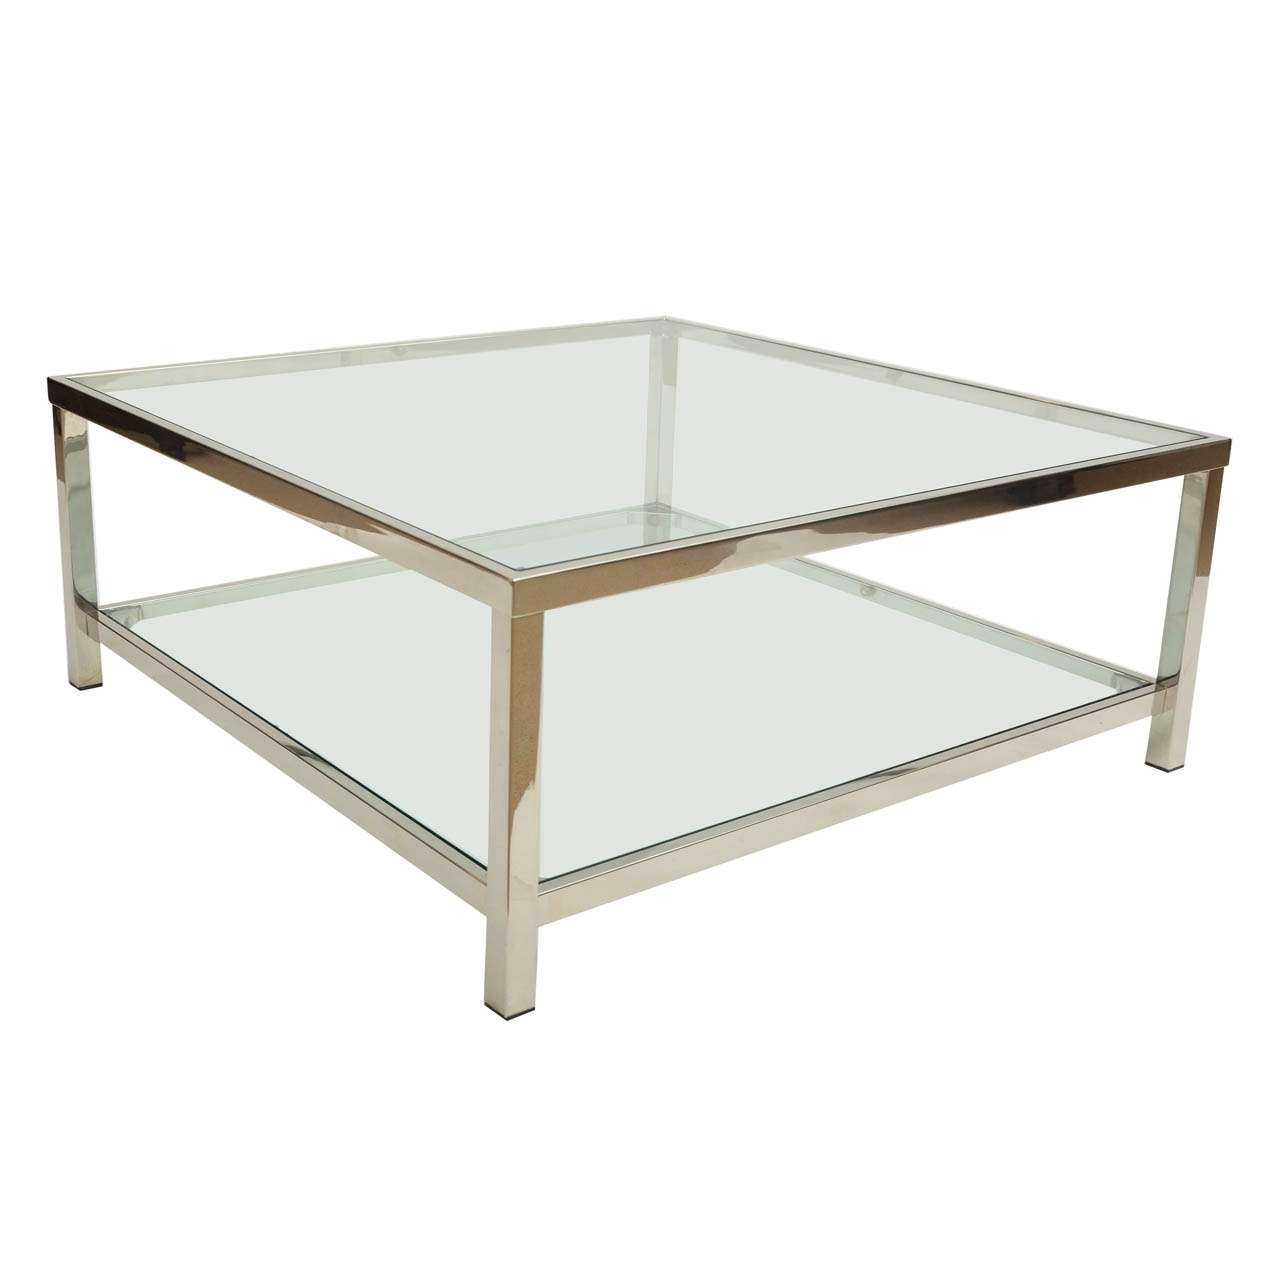 All You Need To Know About Glass And Chrome Coffee Tables Pertaining To Most Popular Glass Chrome Coffee Tables (View 3 of 20)